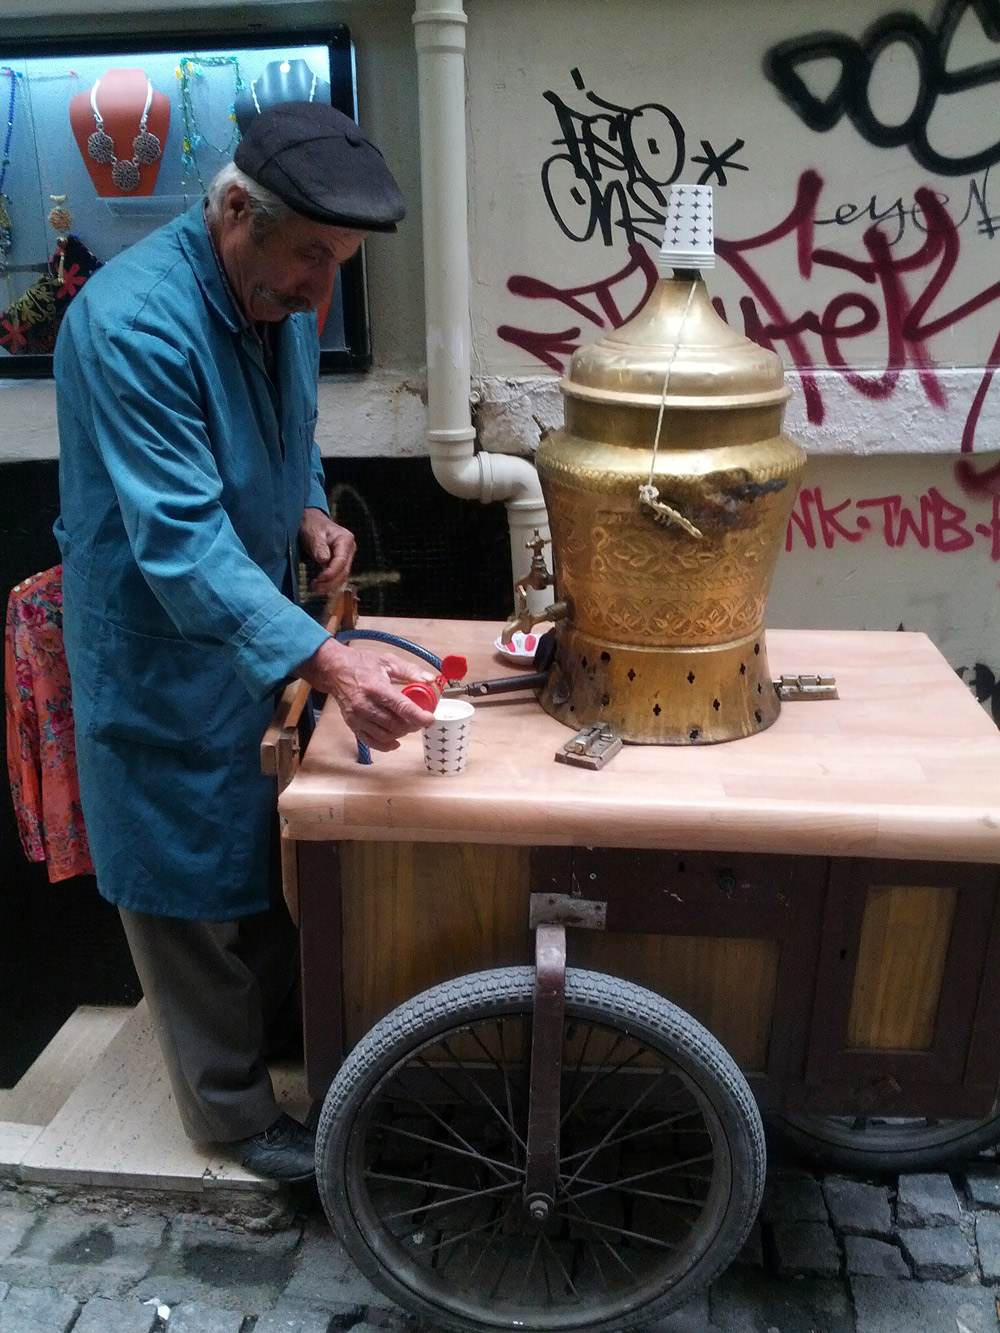 Salep vendor in Galata, Istanbul, Turkey. Image courtesy of  Verena Antje .